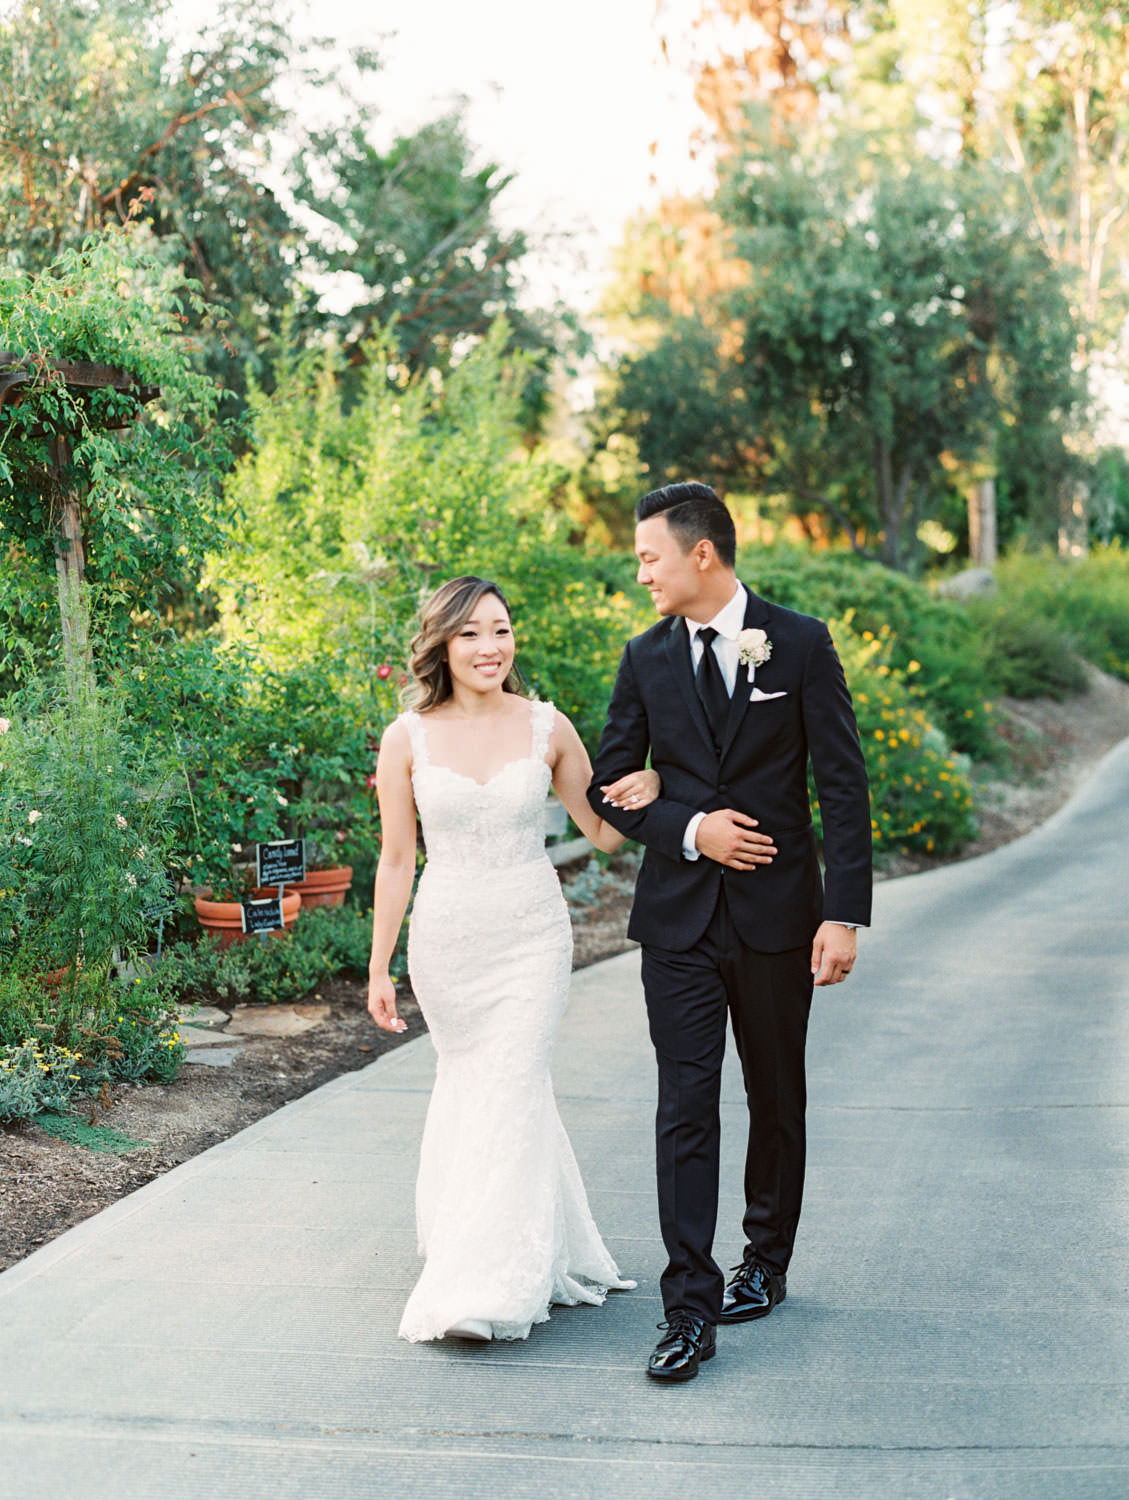 Groom in black tux and bride walking through a garden in a Martina Liana gown from The White Flower. Wedding at Rancho Bernardo Inn. Film photo by Cavin Elizabeth Photography